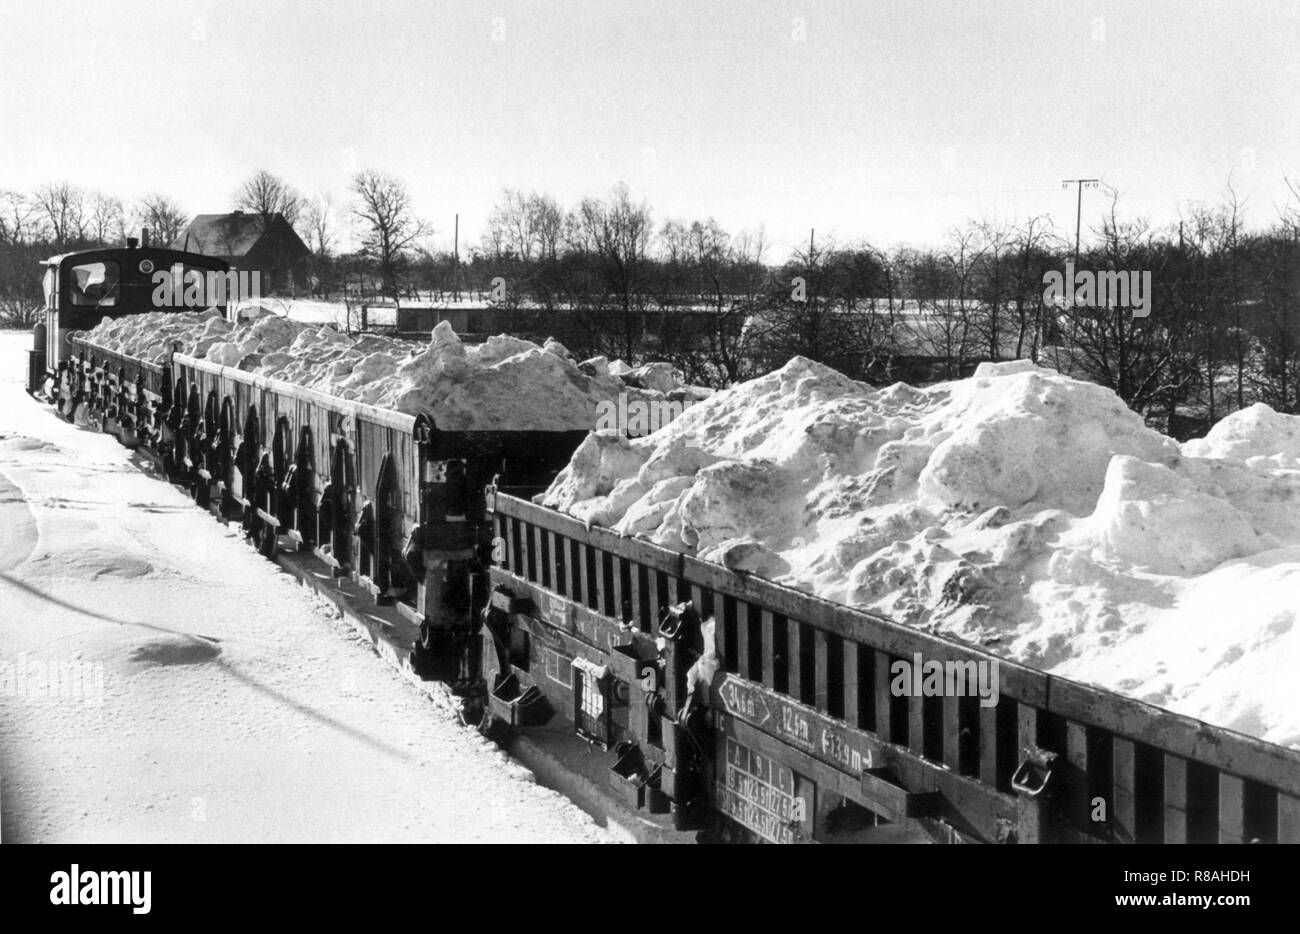 Wagons full of snow are transported on February 4, 1979 after Heide (Schleswig-Holstein) and from there into a sandpit in Weddingstedt. The snow masses came from the railway stations Hamburg and Lubeck., Which threatened to suffocate in the snow. The drop in temperature on December 29, 1978, led to snow chaos in northern Germany, the north of the GDR, Denmark, and southern Sweden. Partly the traffic and the power supply collapsed, localities were cut off from the outside world. In the Federal Republic alone, 17 people were killed because of the snow chaos. On February 14, 1979 dense snowfall a - Stock Image